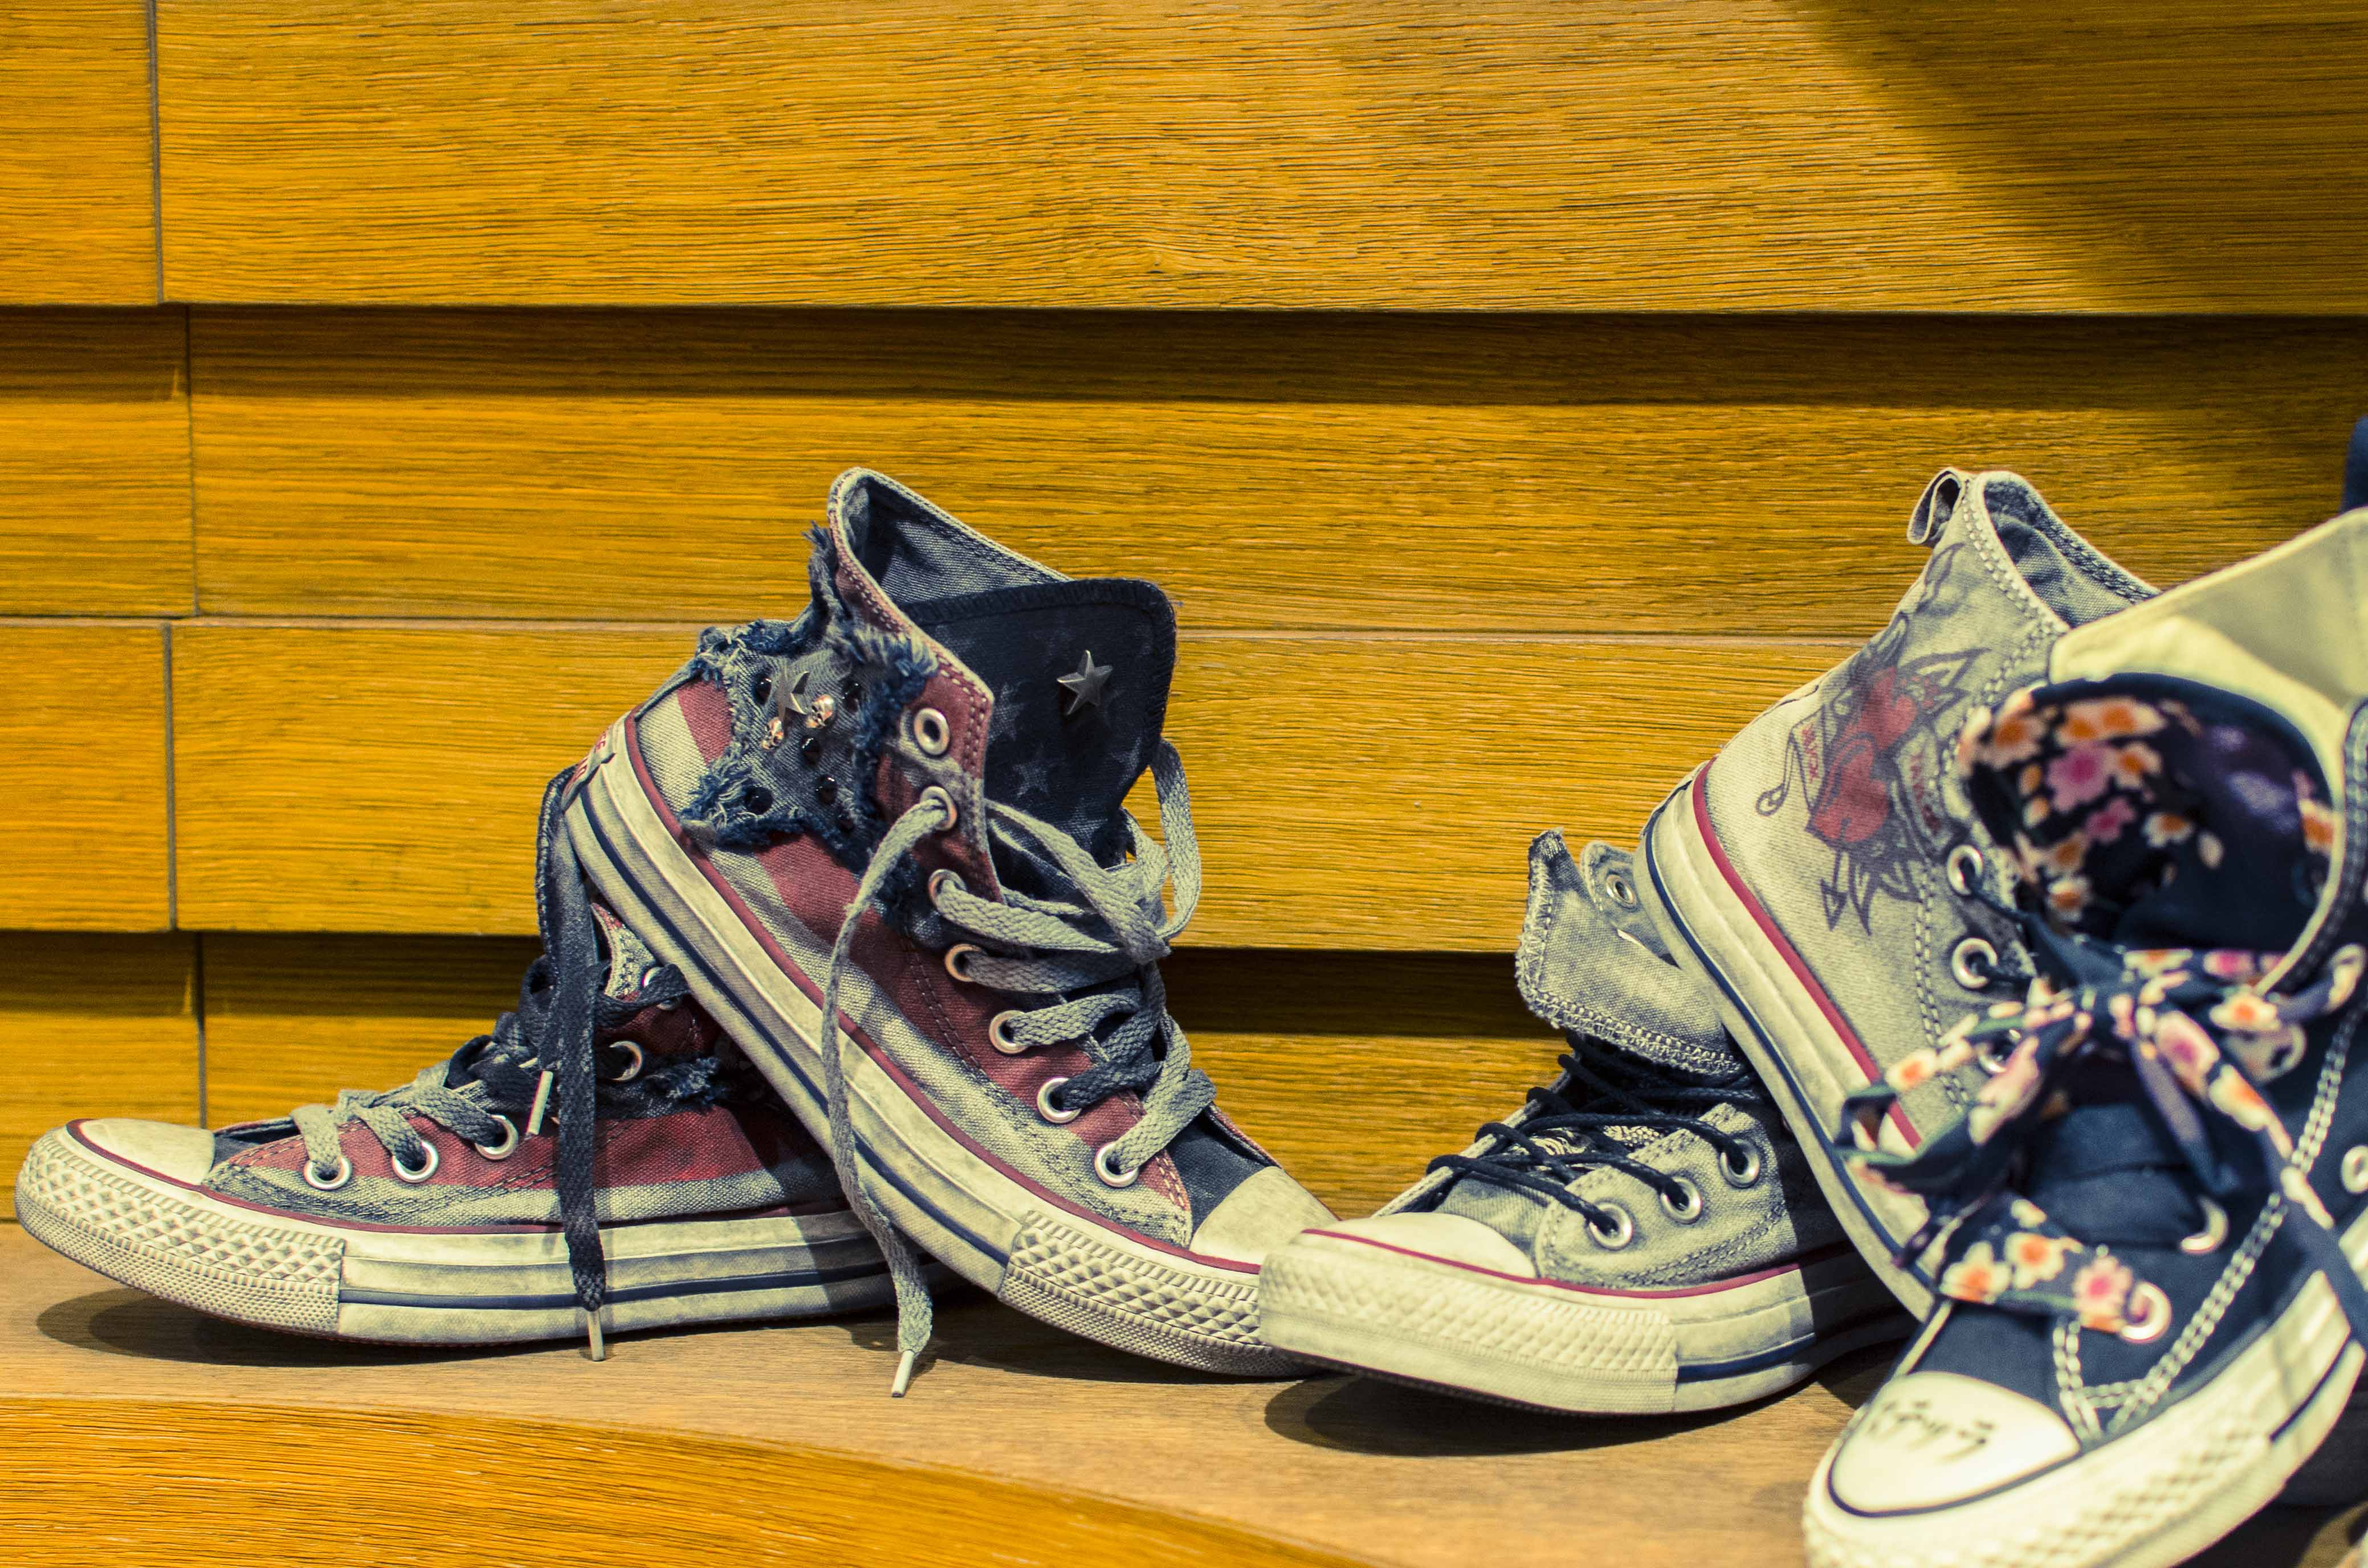 Siena Shopping's Jungle - Speciale Converse - Siena News